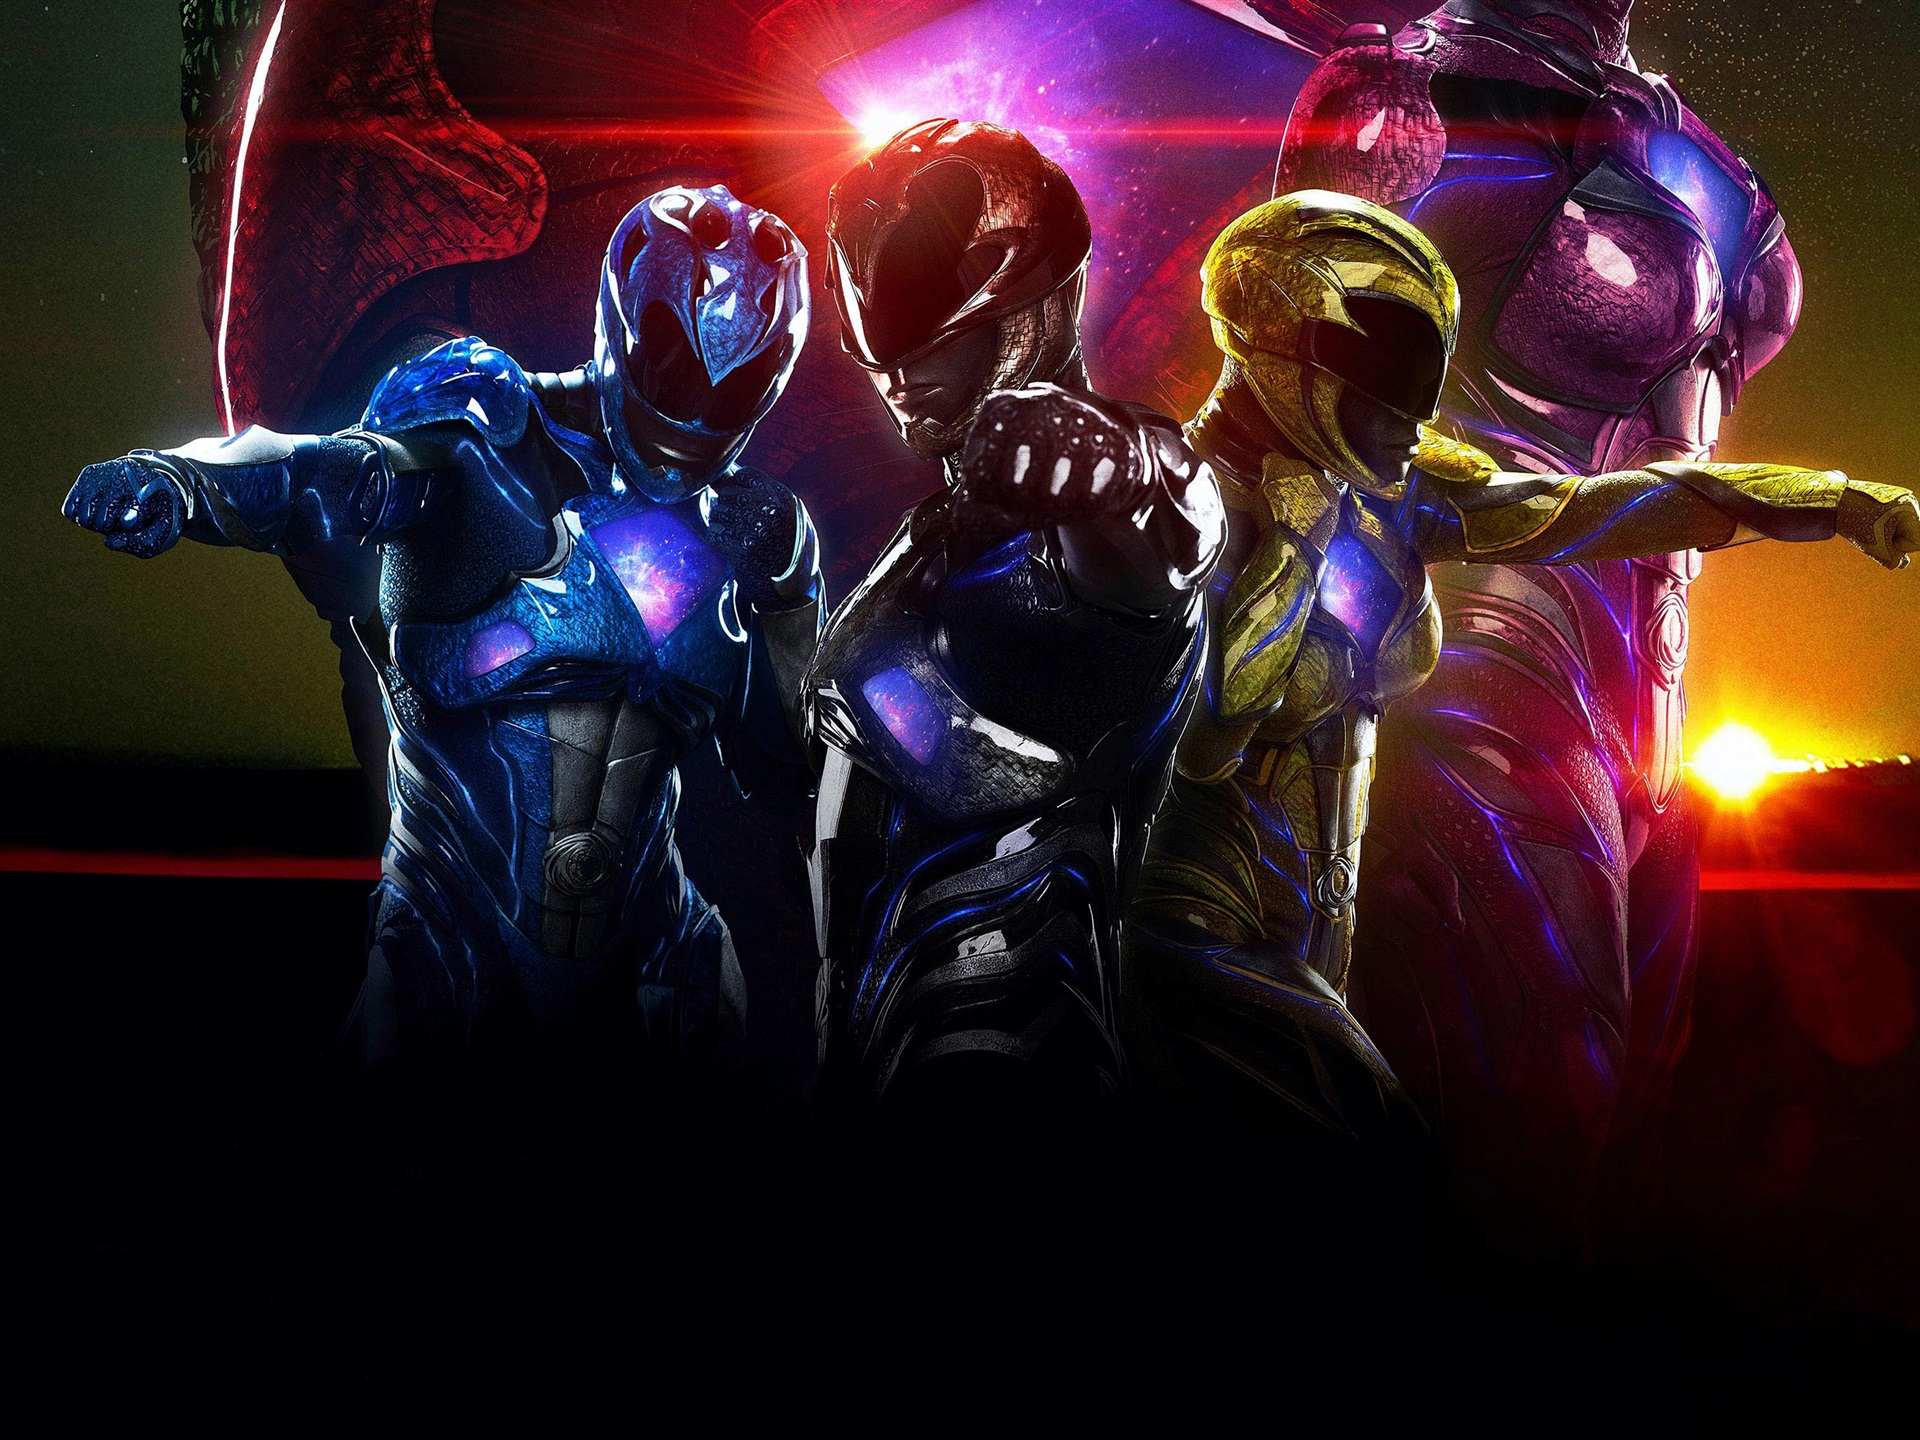 Wallpaper Power Rangers Super Heroes 2880x1800 Hd Picture Image